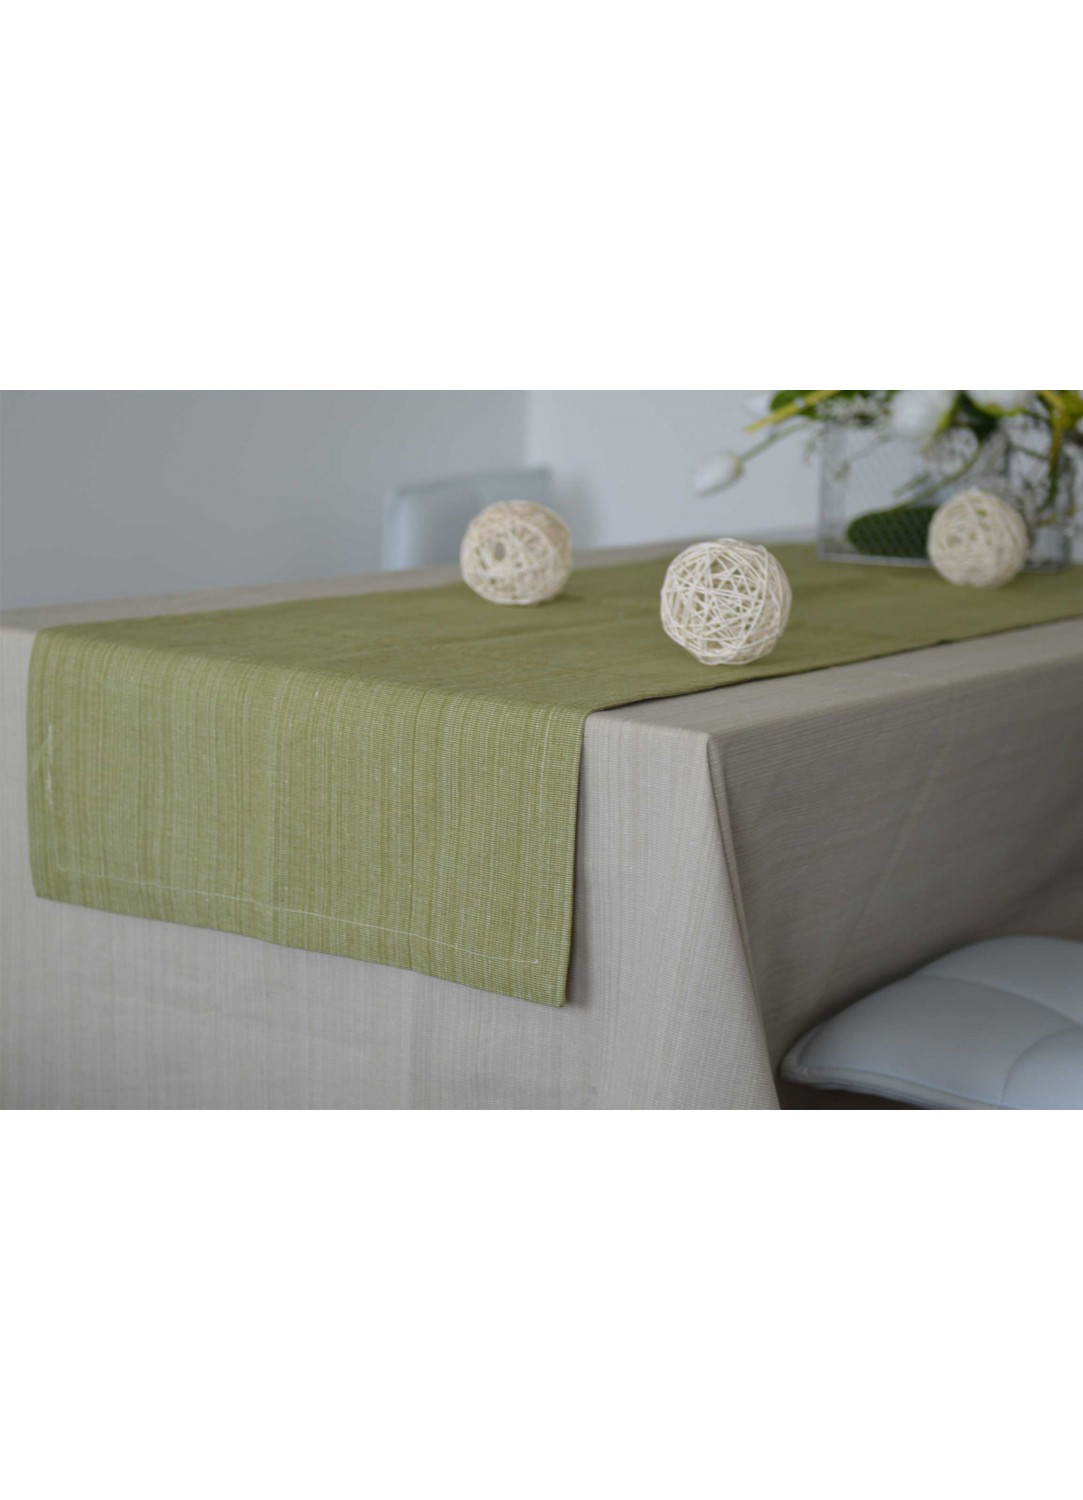 chemin de table en 100 coton biologique vert lin. Black Bedroom Furniture Sets. Home Design Ideas